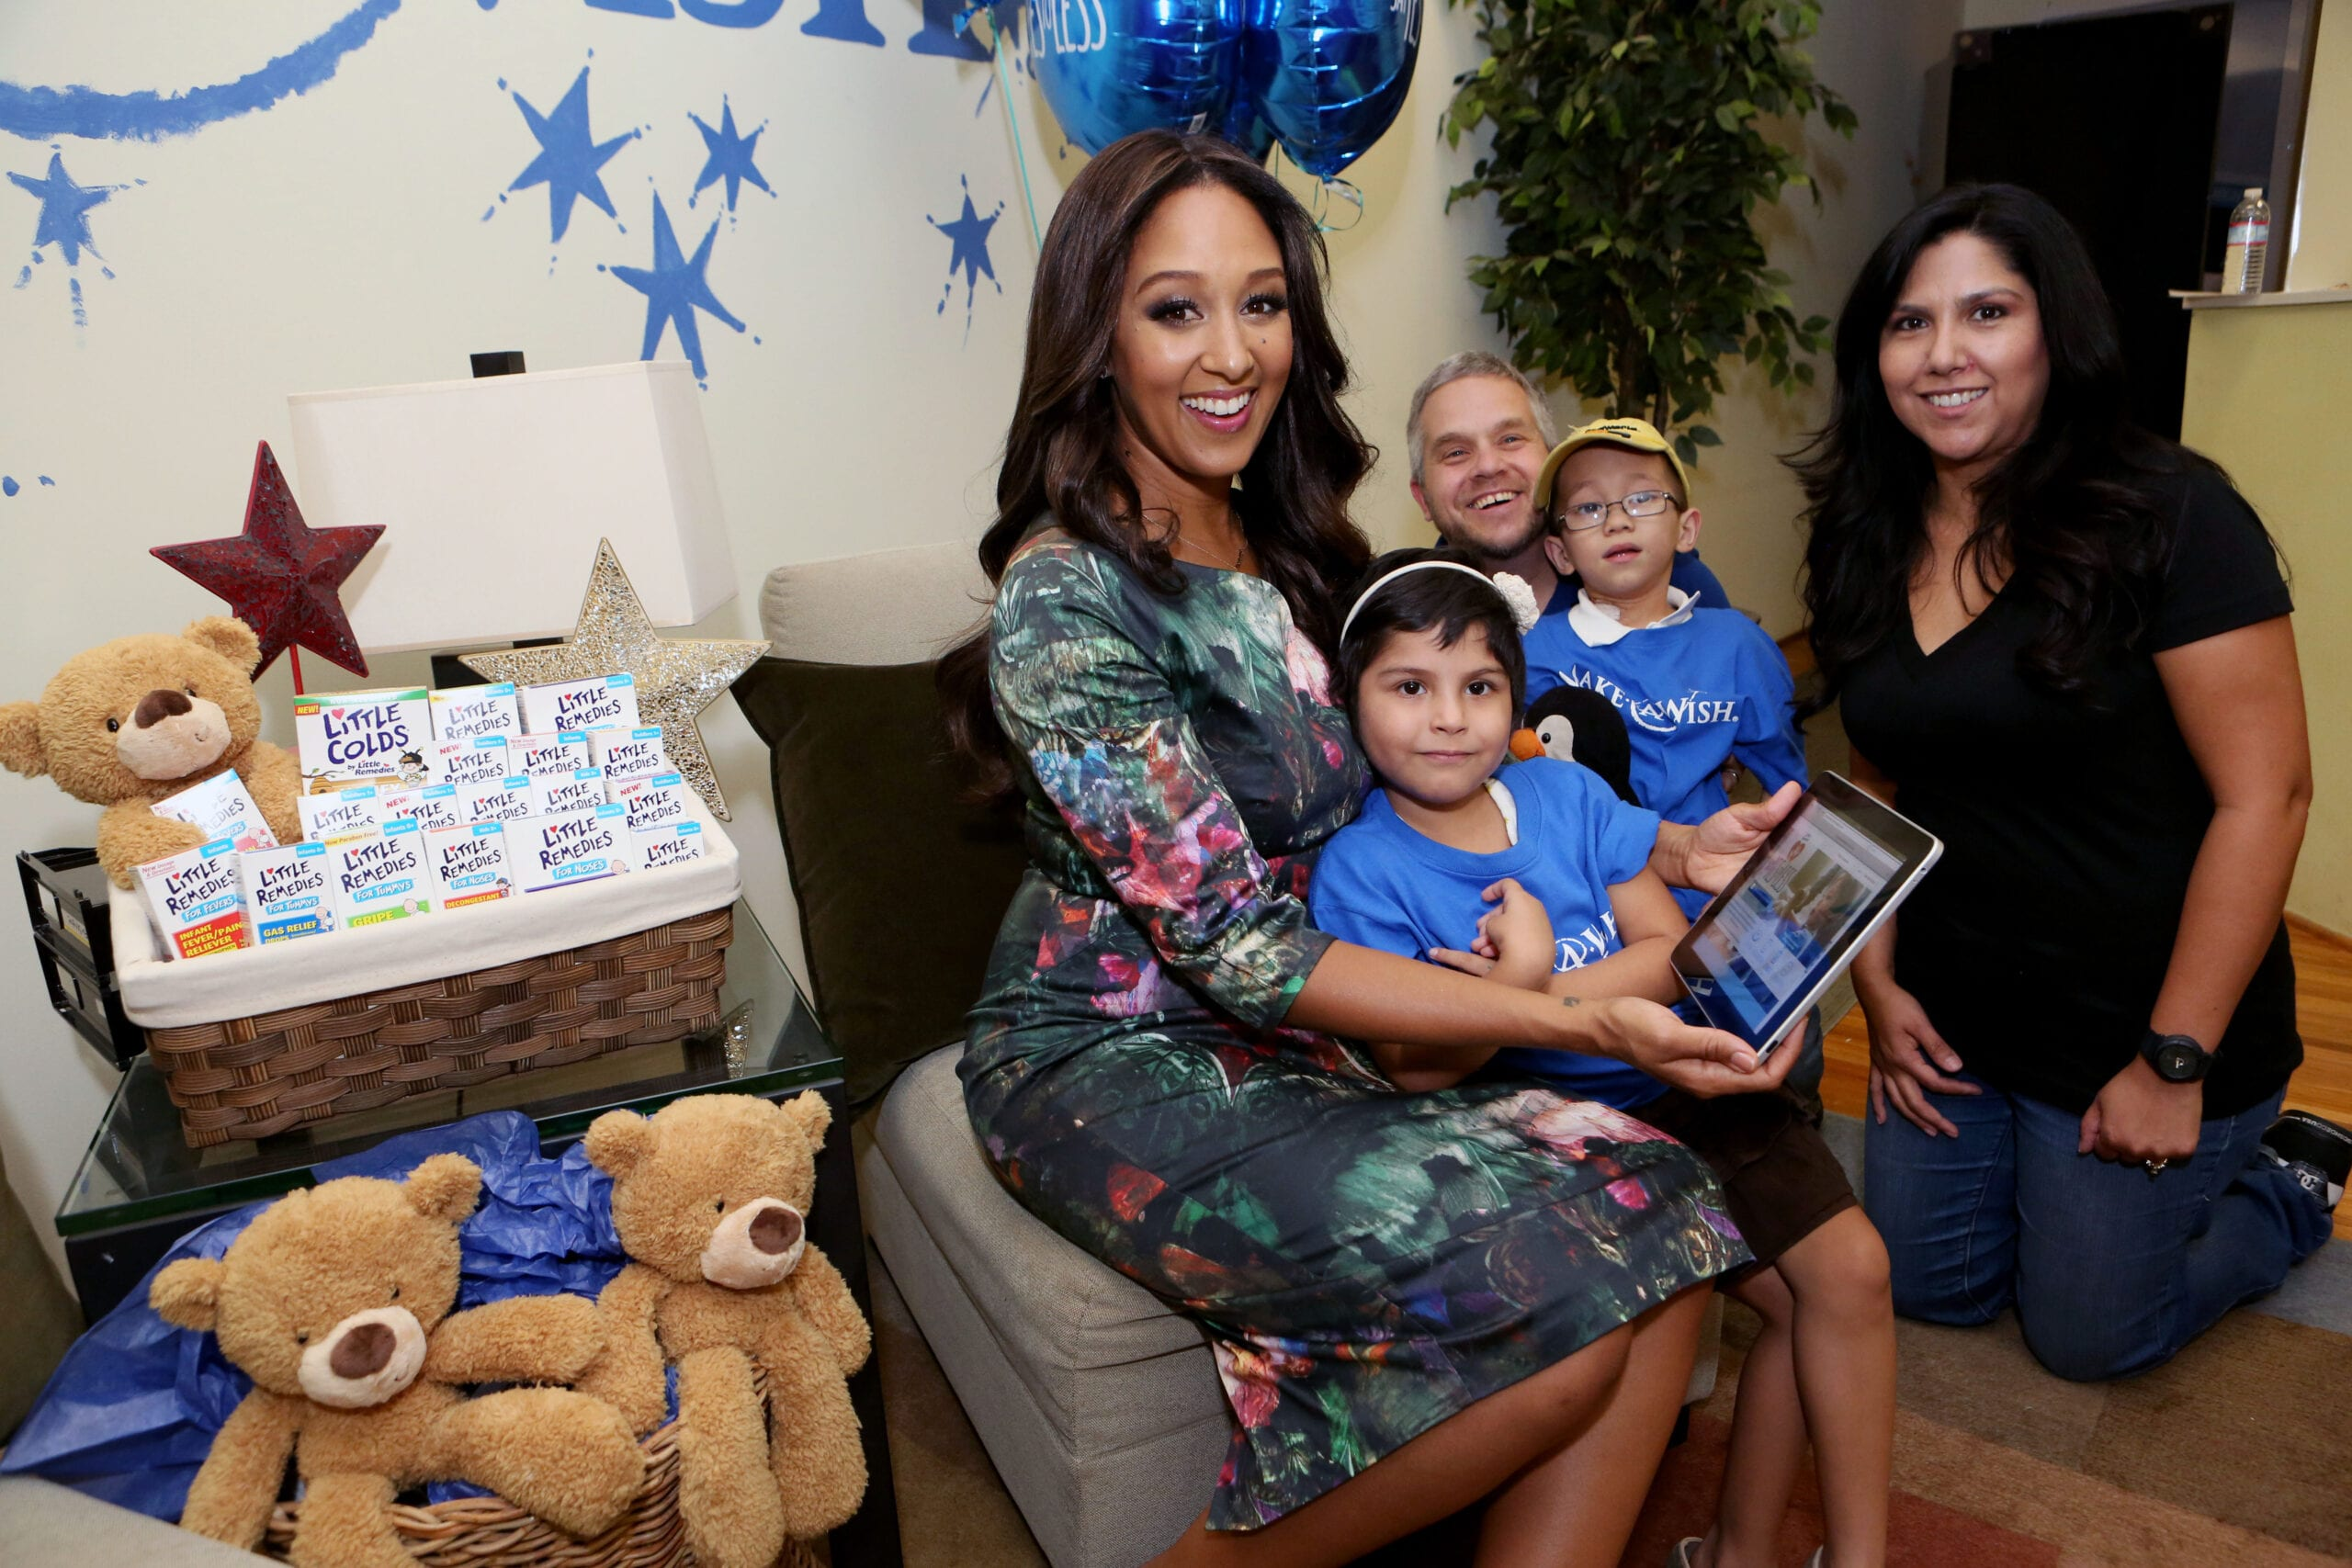 Tamera Mowry-Housley @TameraMowryTwo #Audio Interview w/ #247ModernMom @LittleRemedies @MakeAWish #SayYes2Less